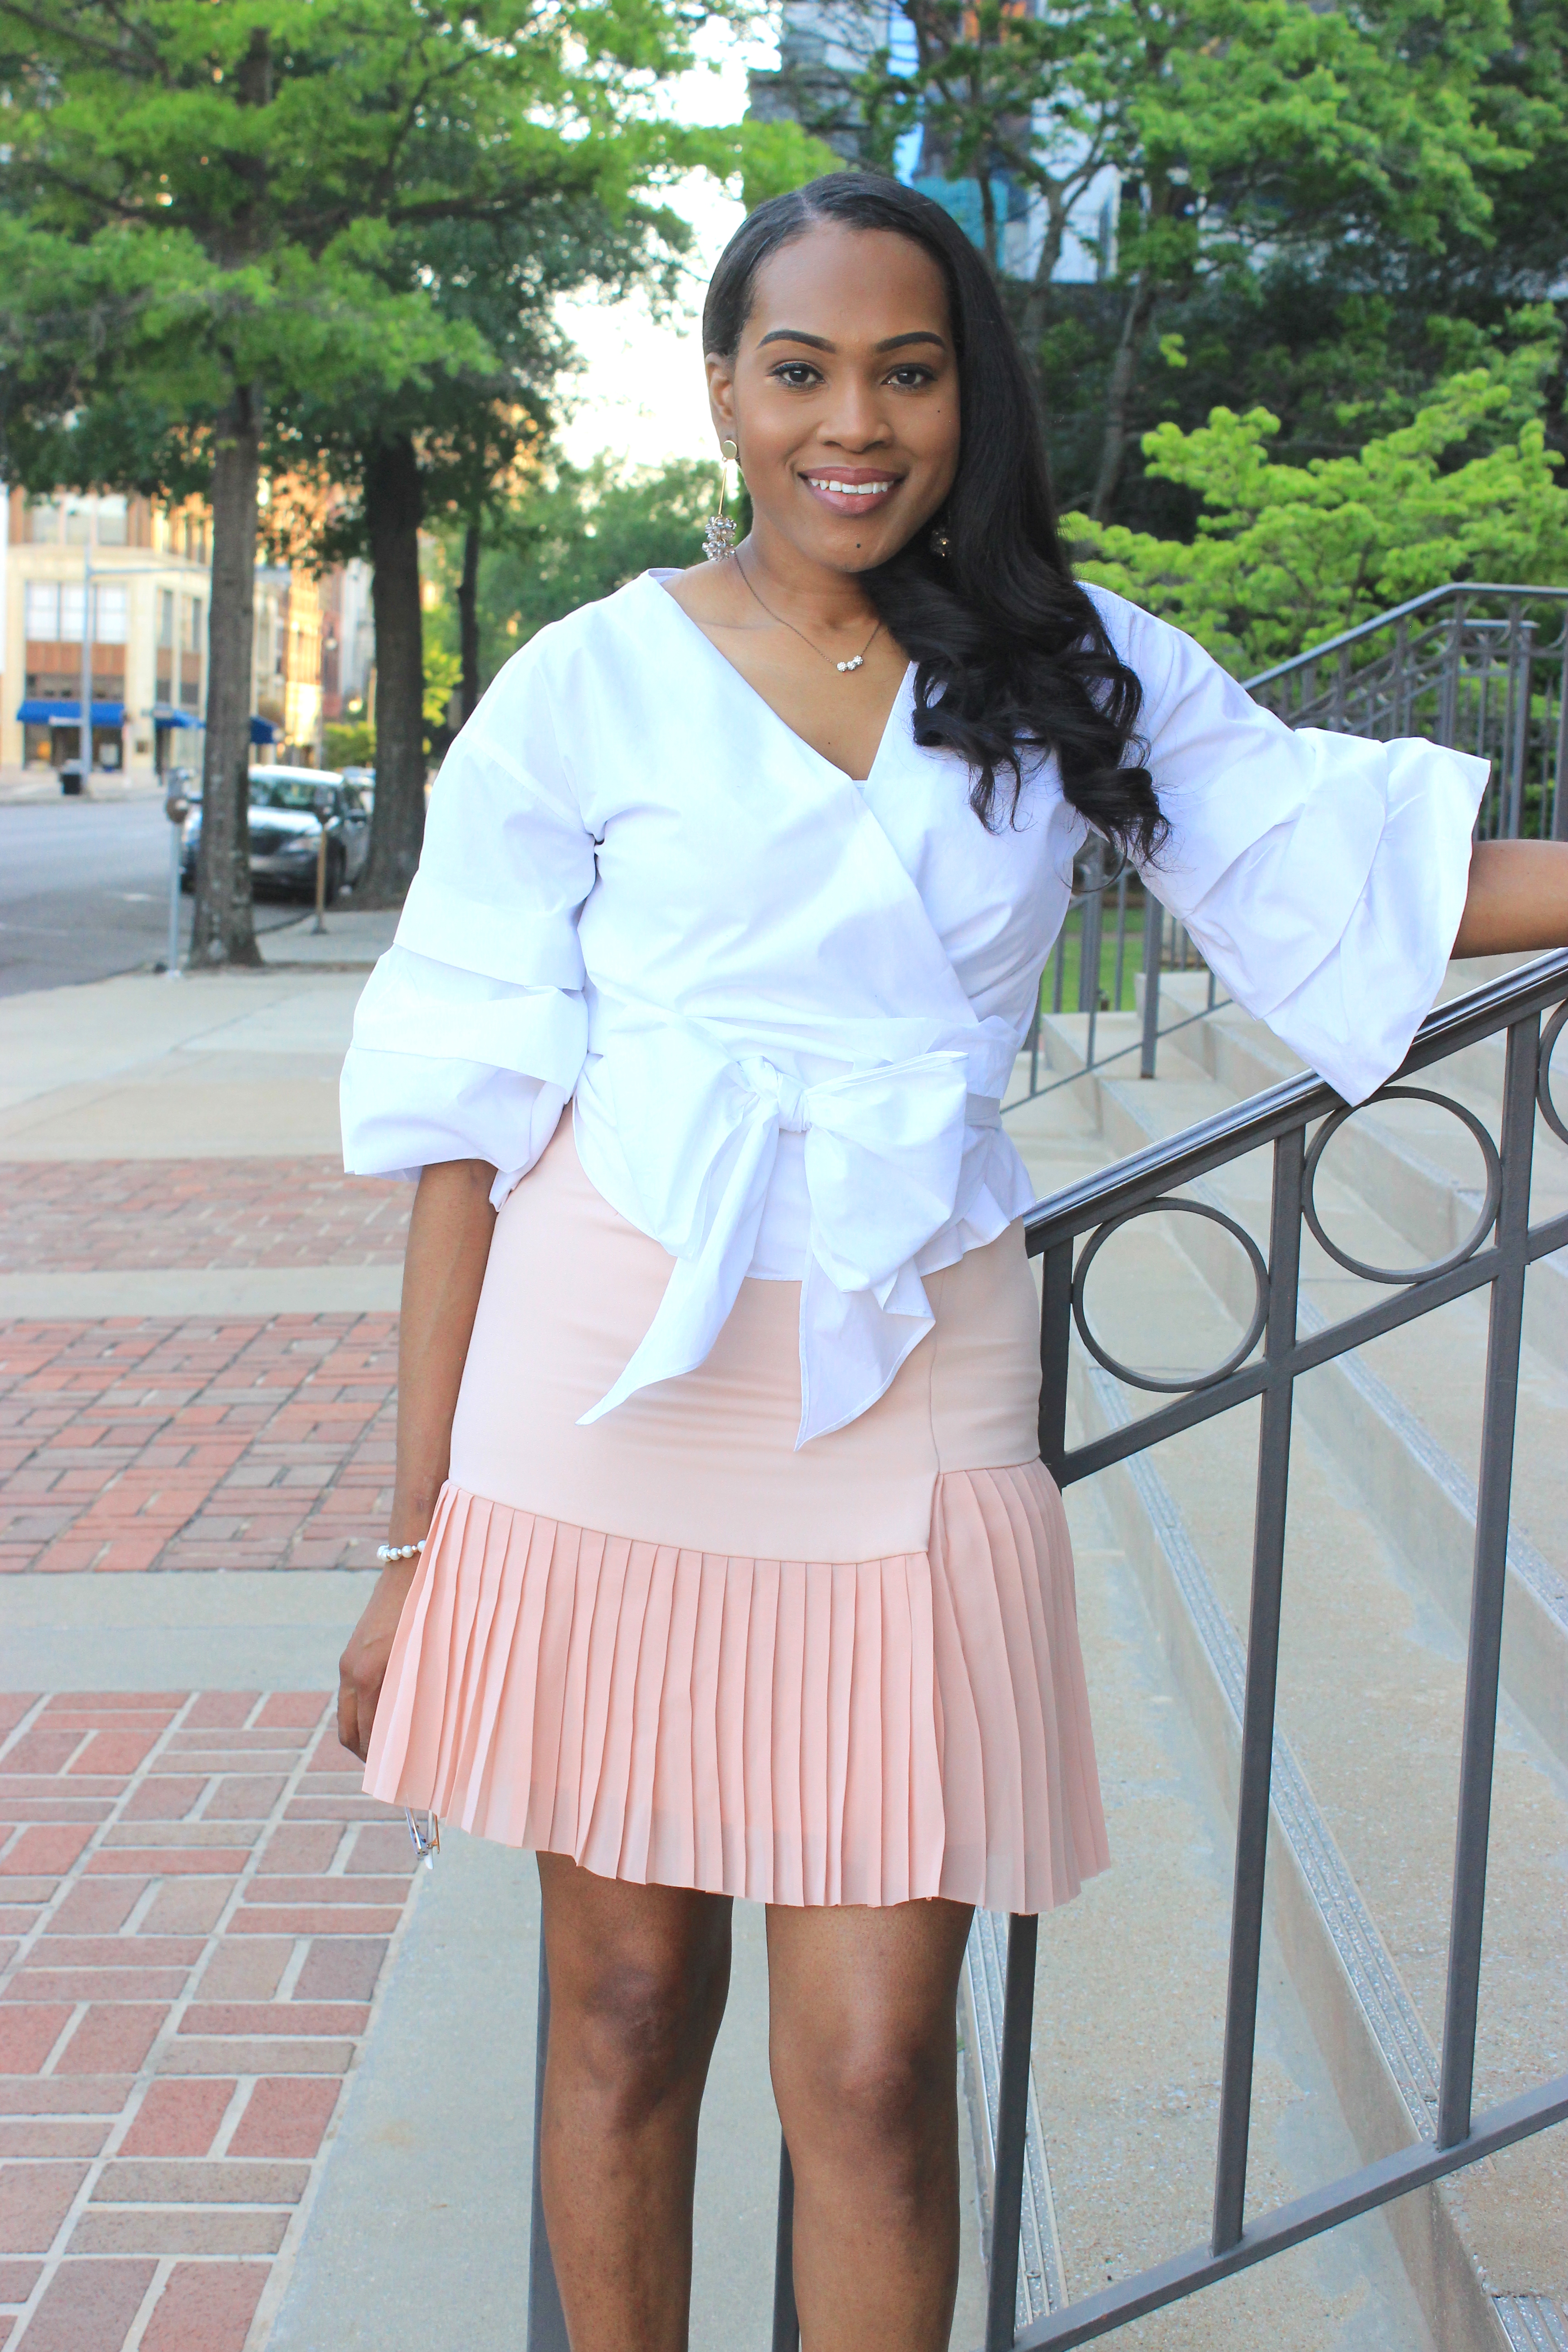 White-puff-sleeve-wrap-blouse-pink-pleated-mini-skirt-justfab-salona-cylinder-heel-sandals-top-Birmingham-blogger-Alabama-bloggers-oohlalablog-11